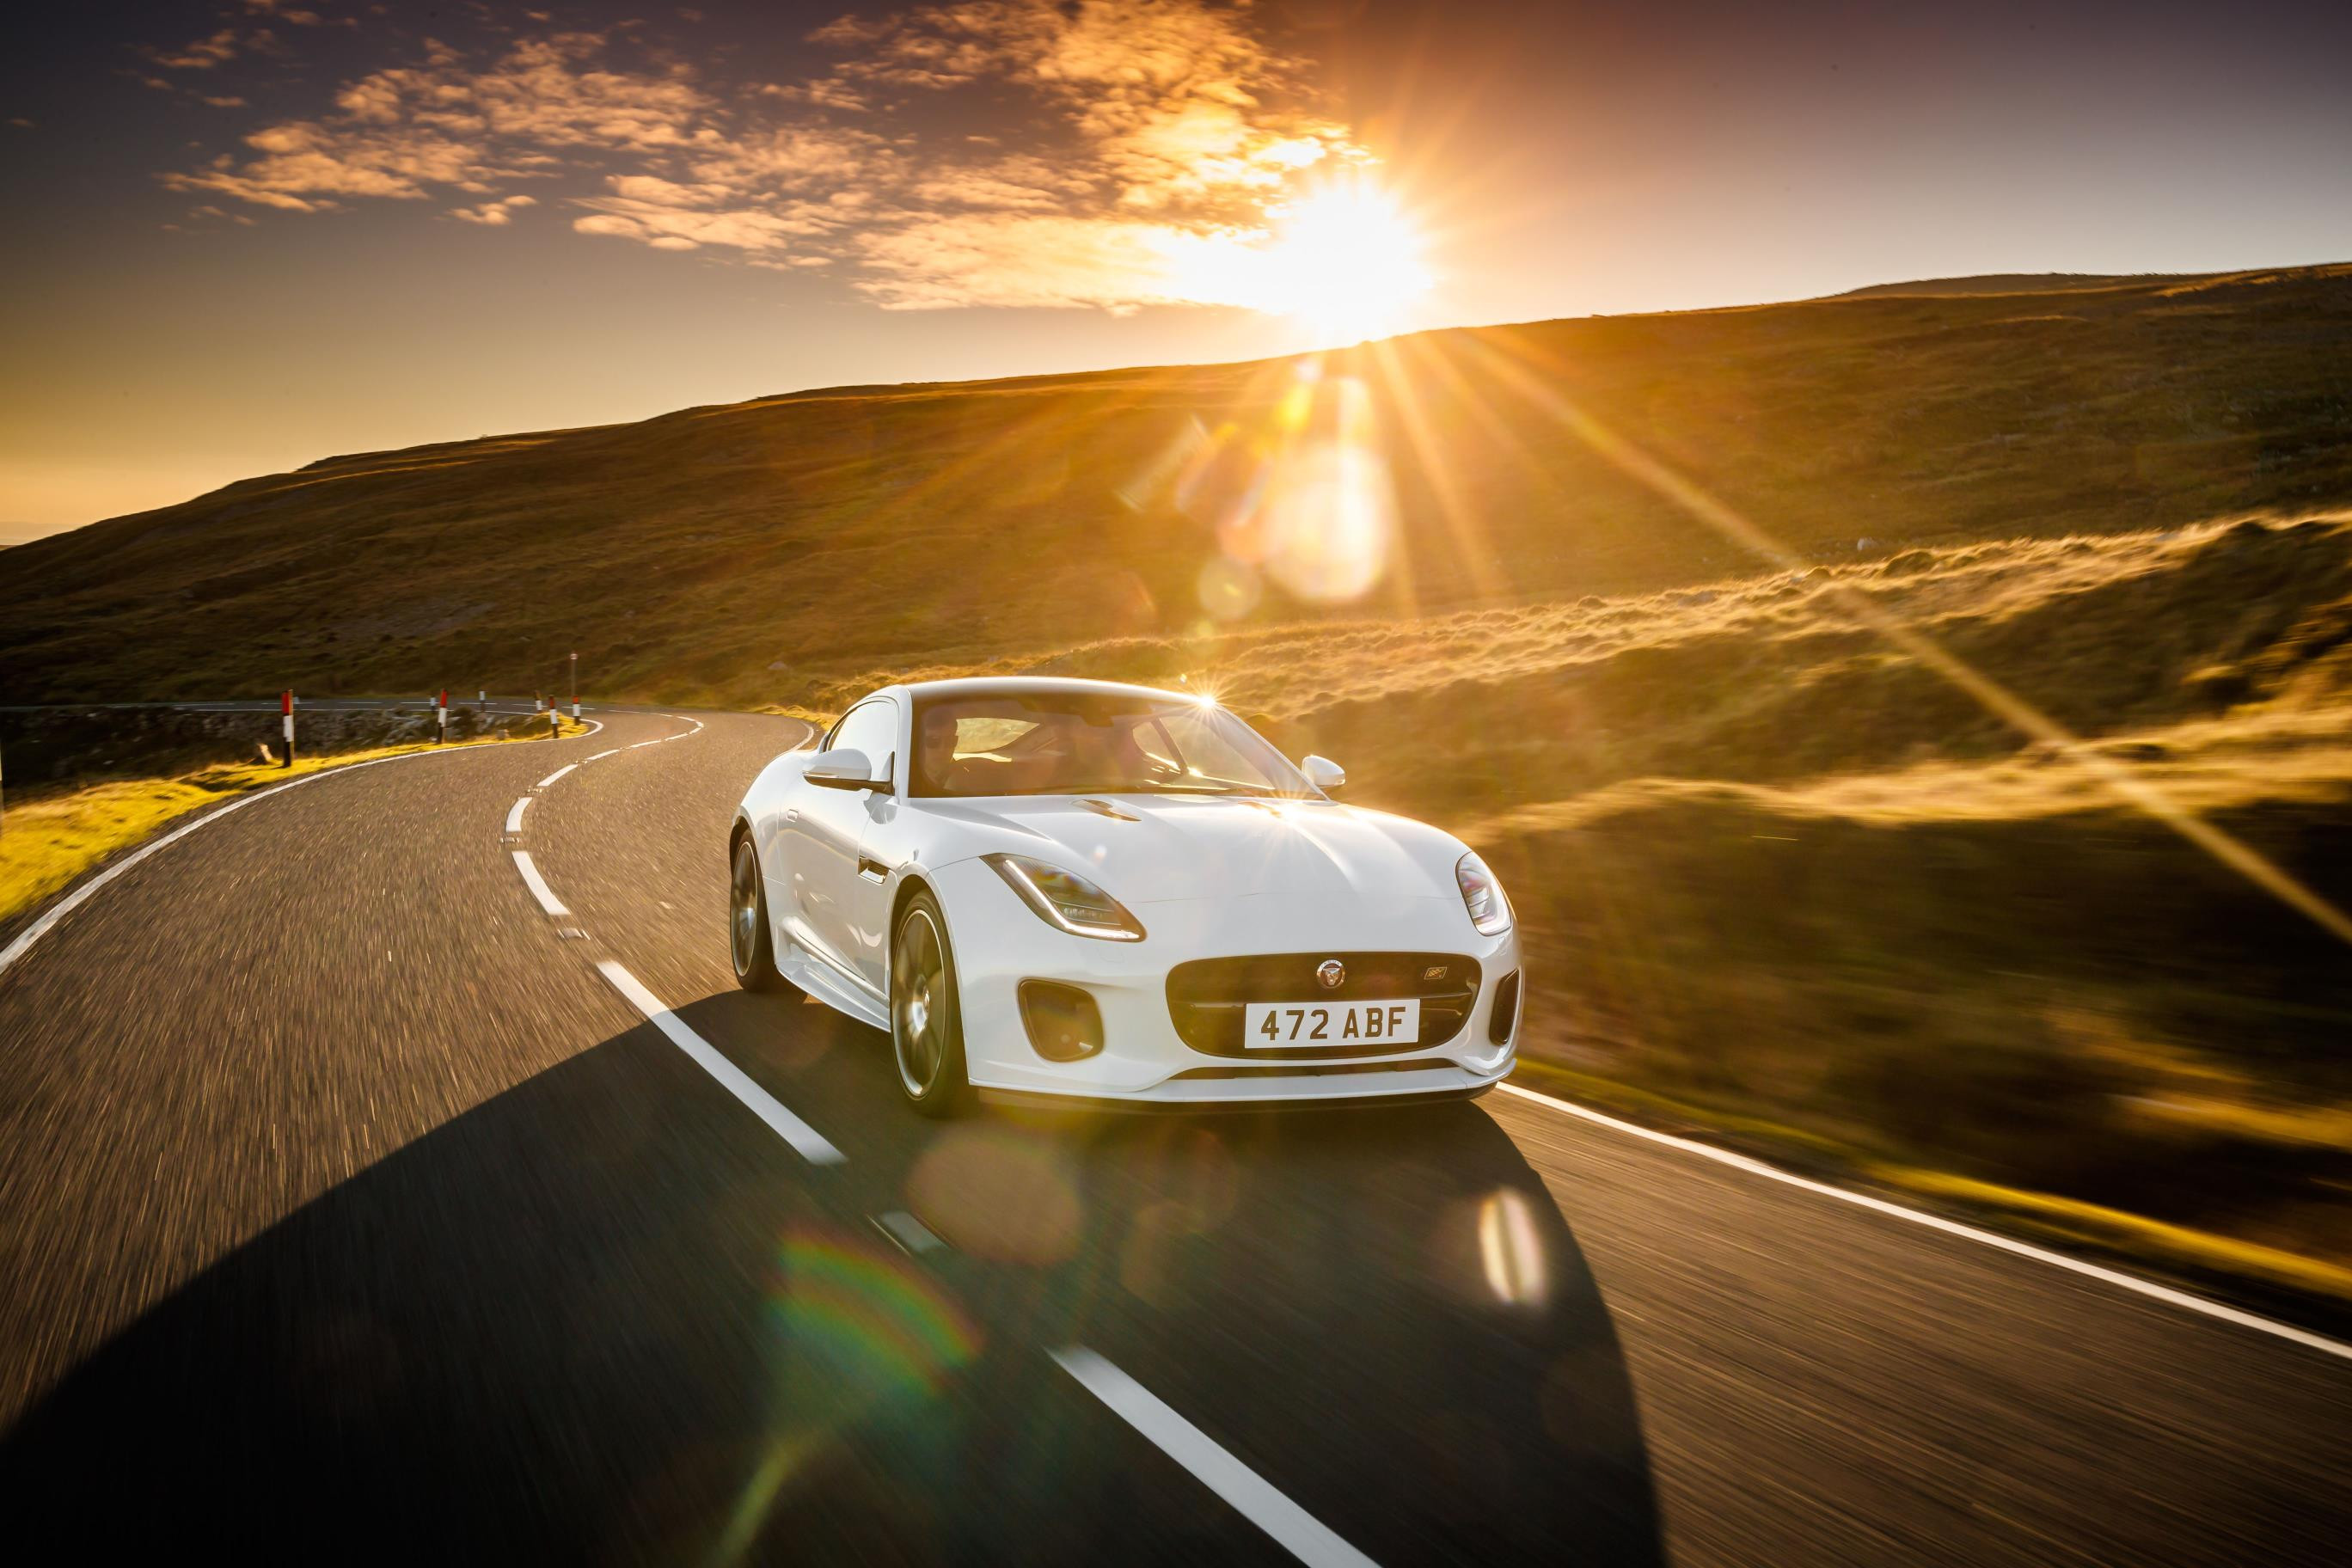 White Jaguar F-Type sports car driving towards you at sunset